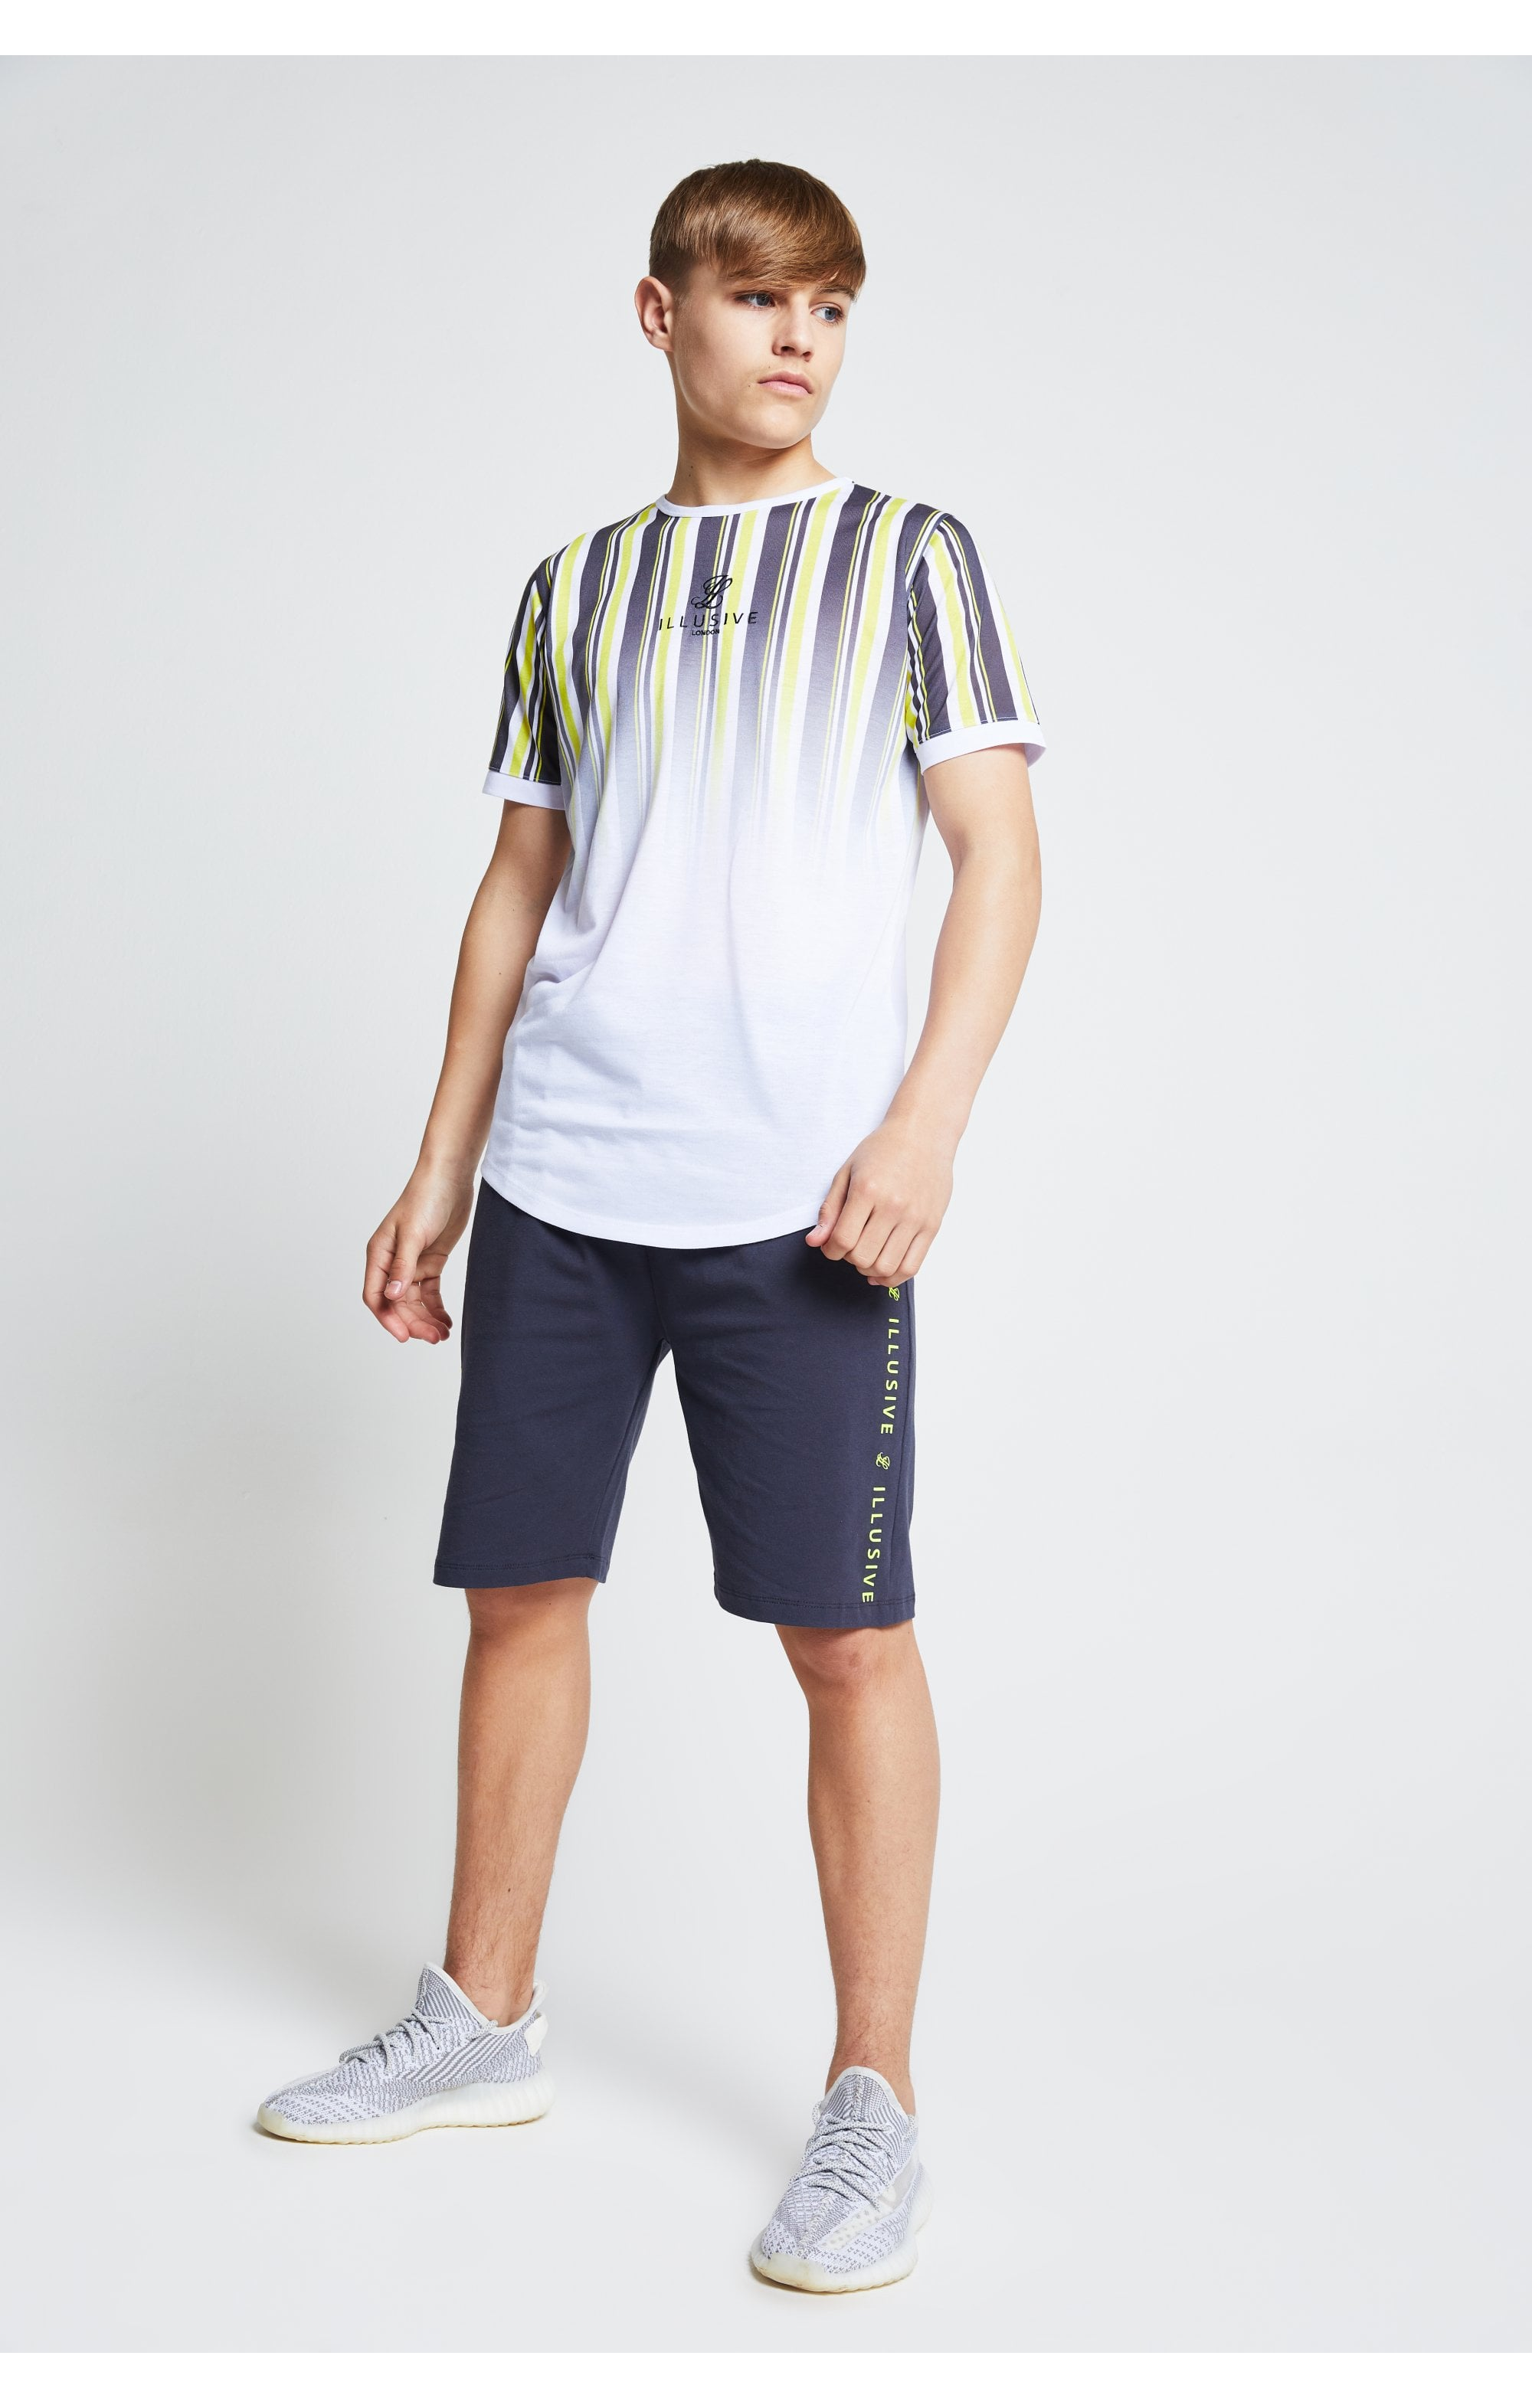 Illusive London Jersey Shorts - Grey Neon Yellow (3)